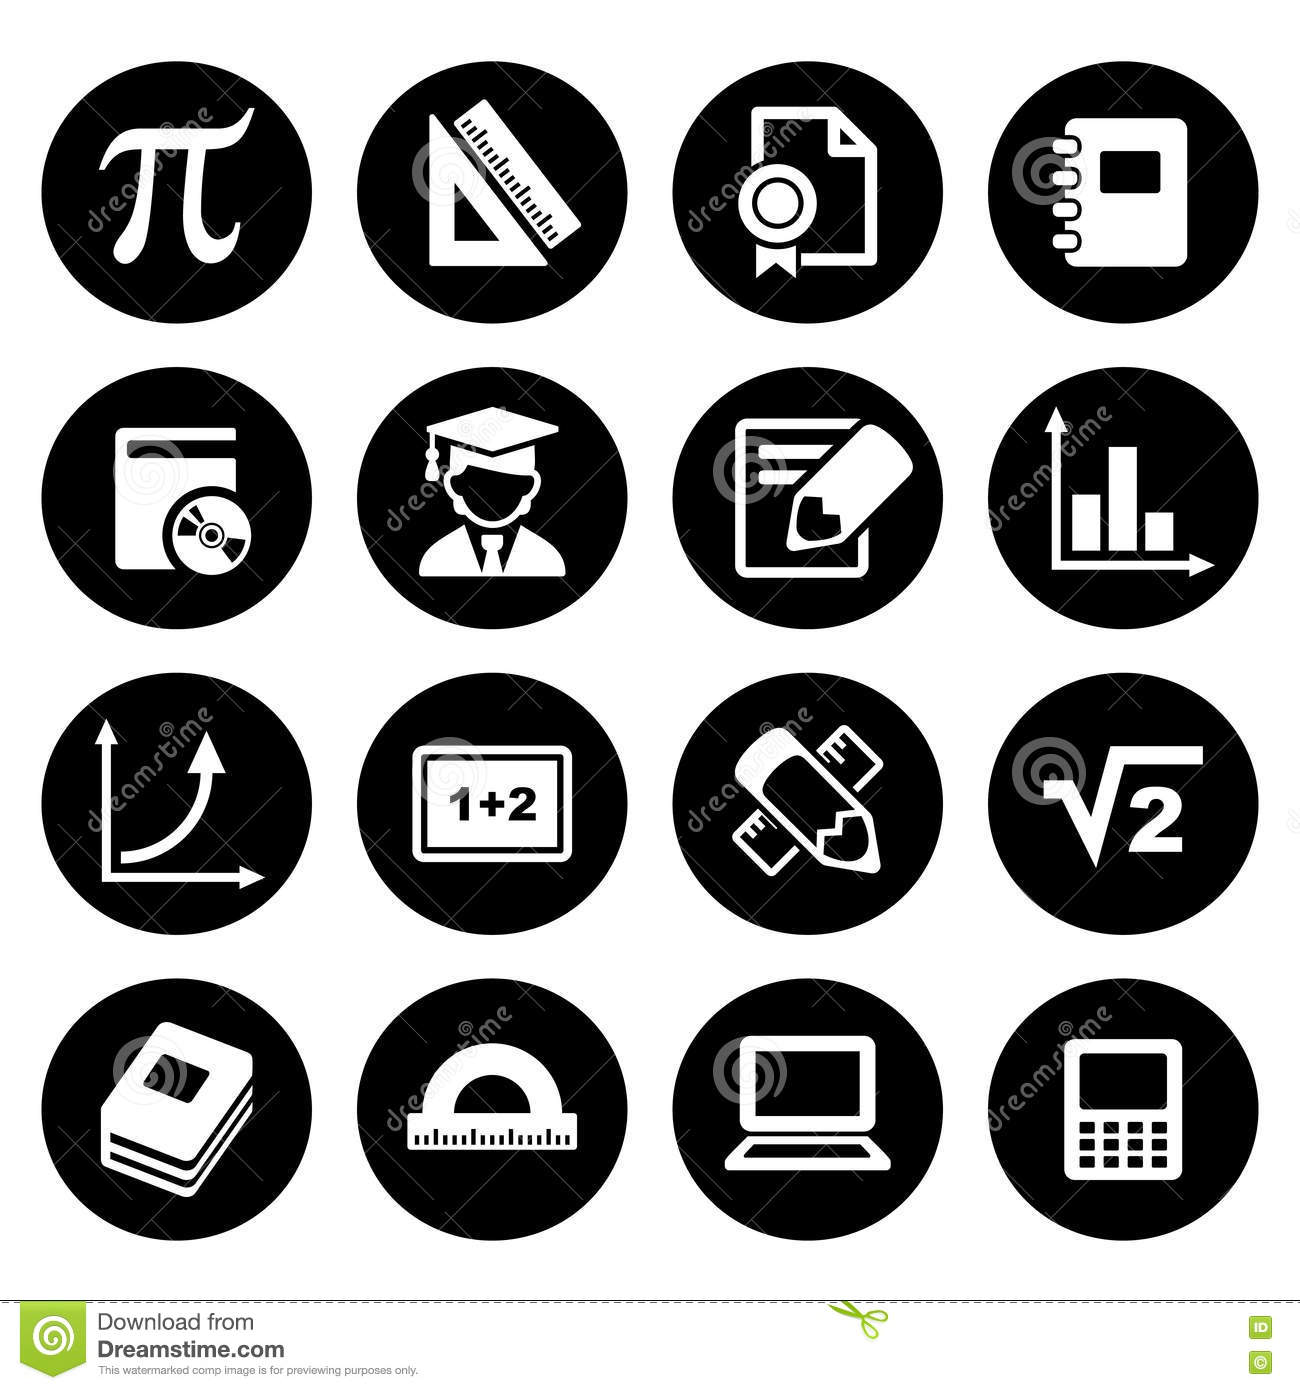 Mathematics vector icons 2 stock image image of calculator 69819341 mathematics icons set stock images buycottarizona Image collections